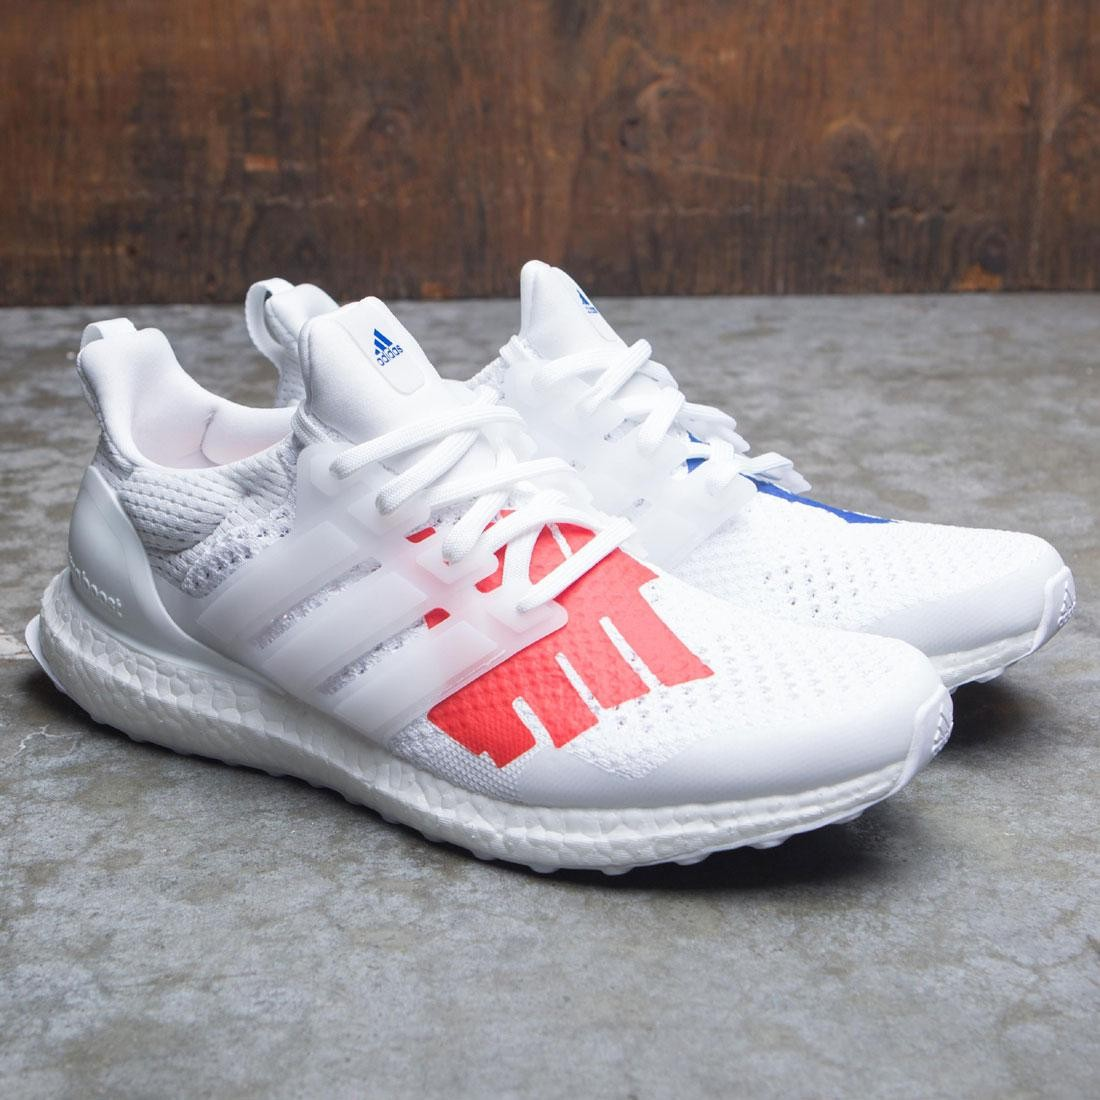 Adidas Consortium x Undefeated Men UltraBOOST (white red collegiate royal)